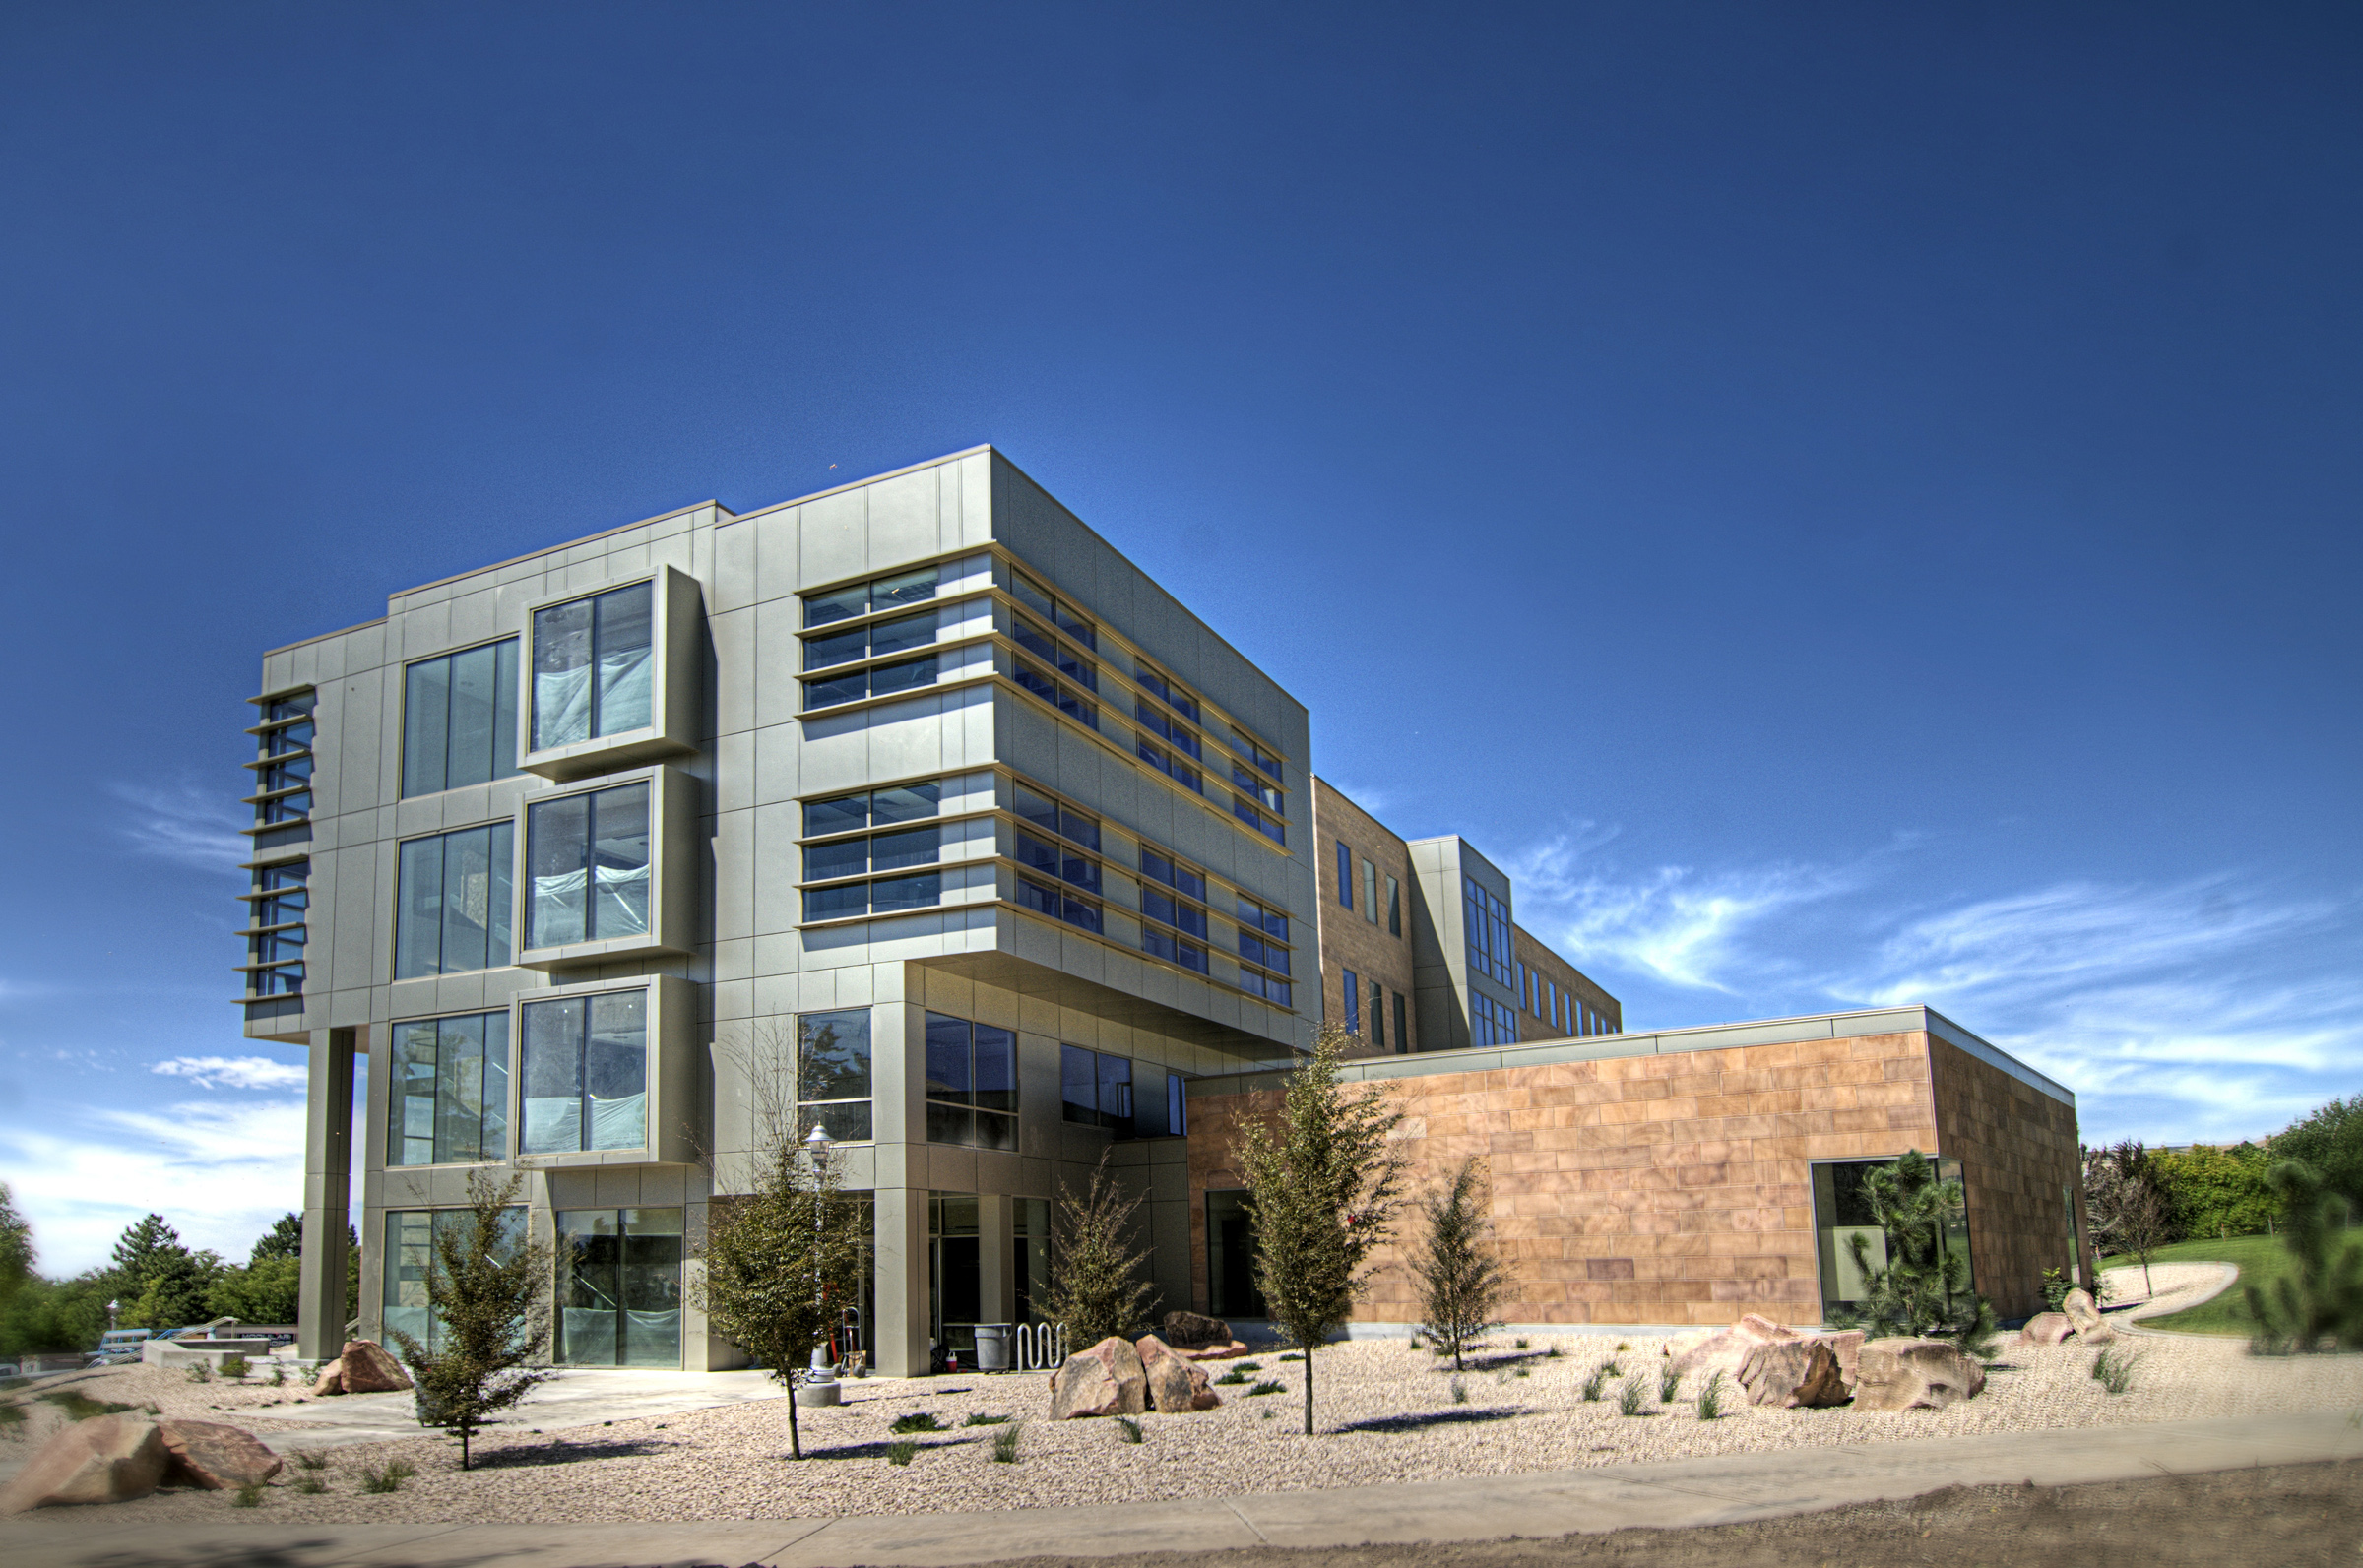 The Tanner Humanities building at the University of Utah, home to the new Second Language Teaching and Research Center.